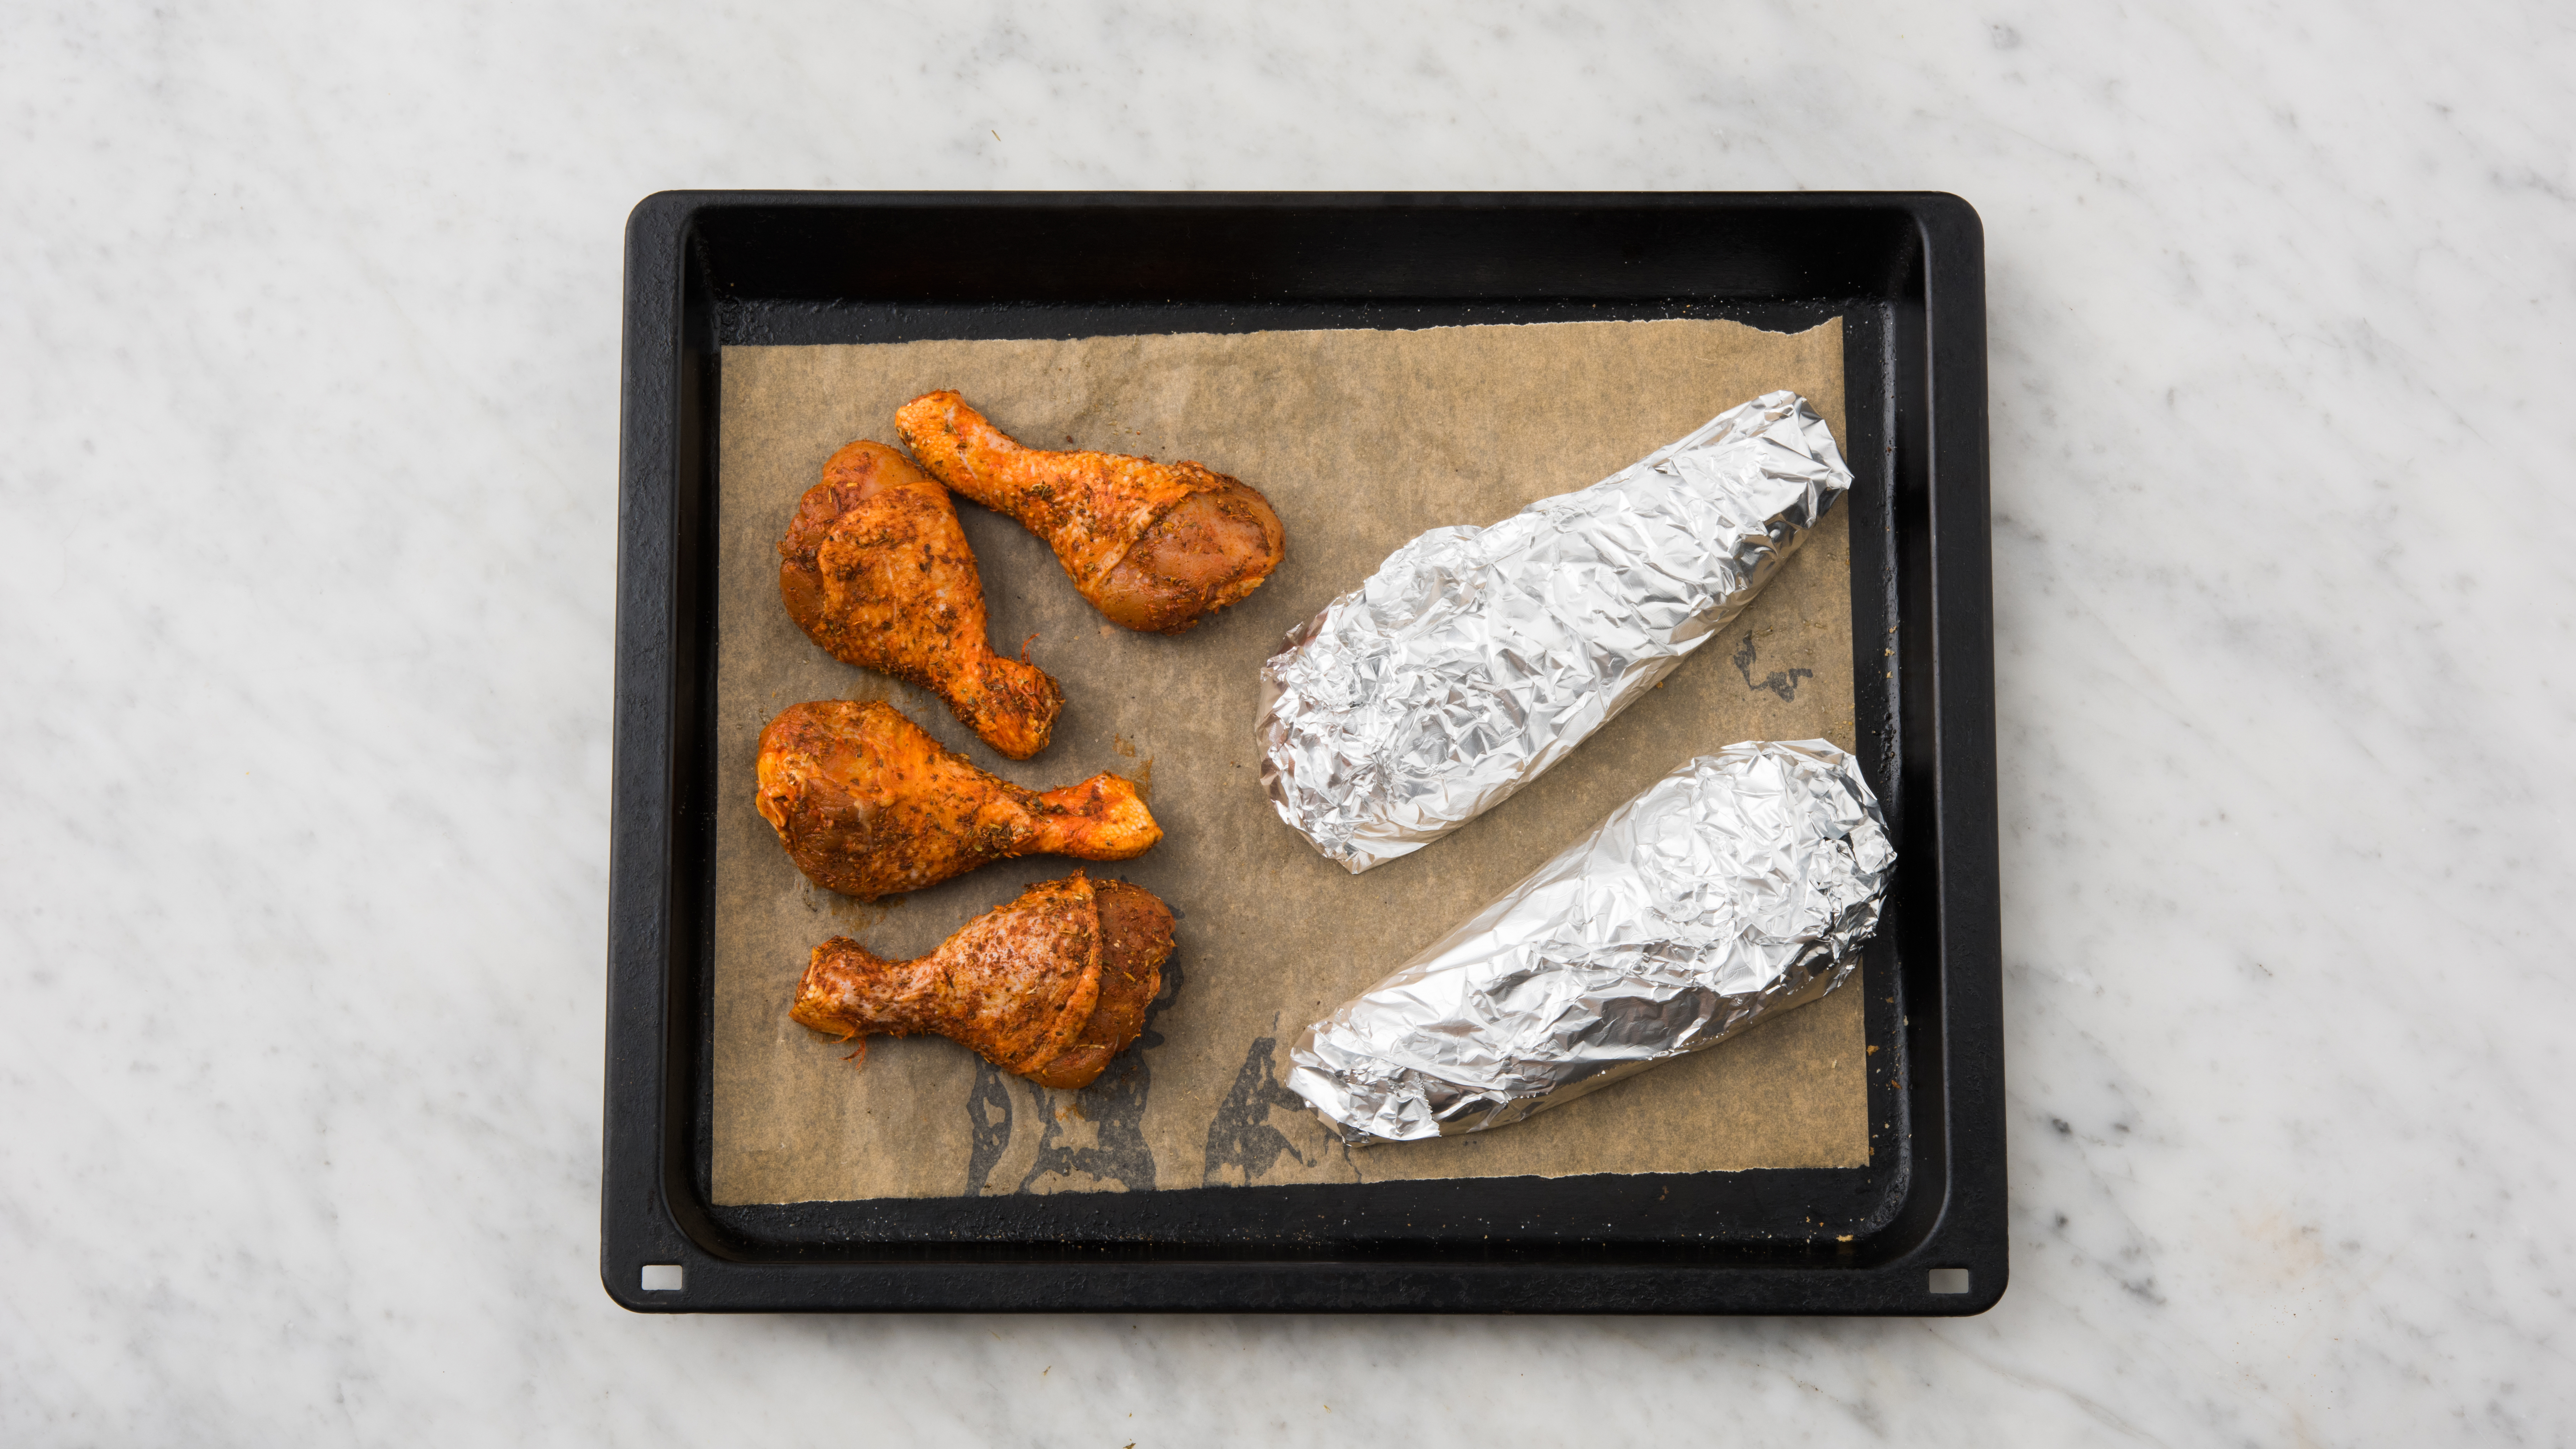 how to reheat fried chicken so it stays fresh